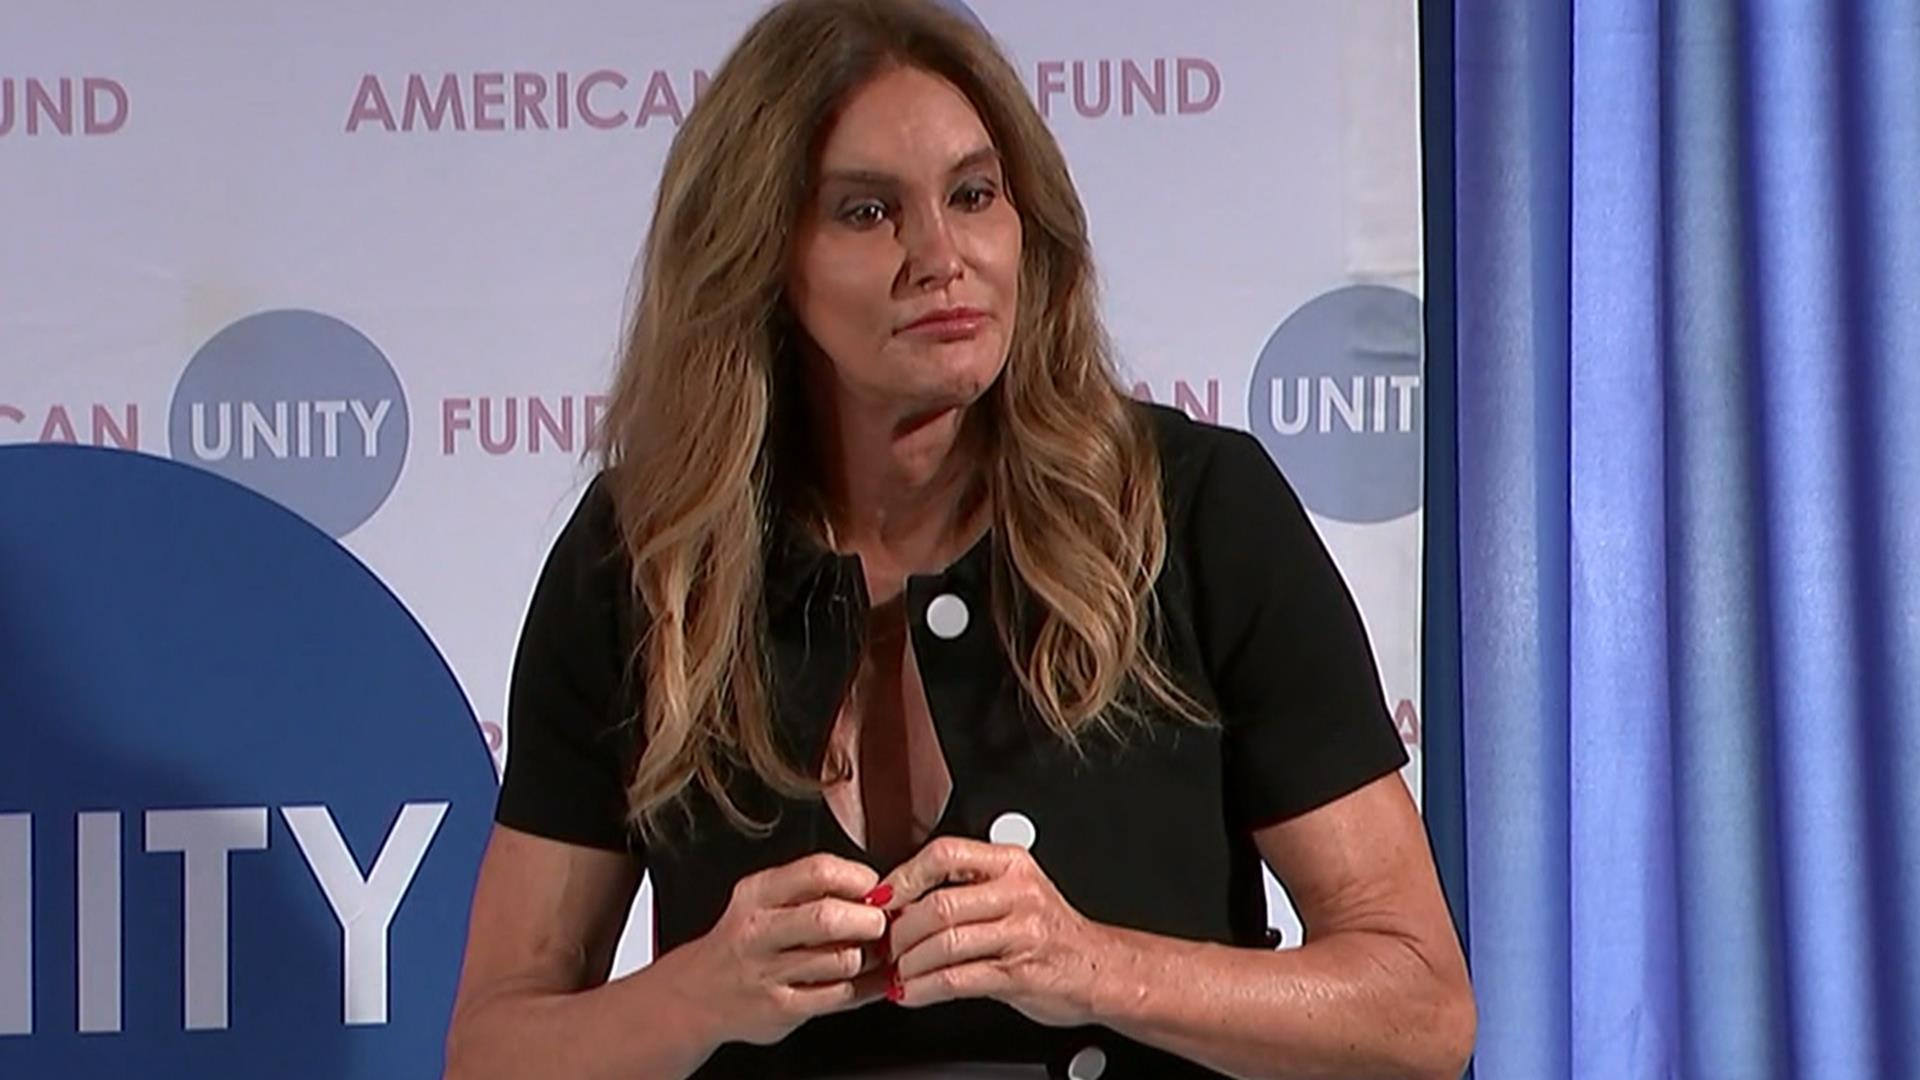 Caitlyn Jenner on why she's a Republican